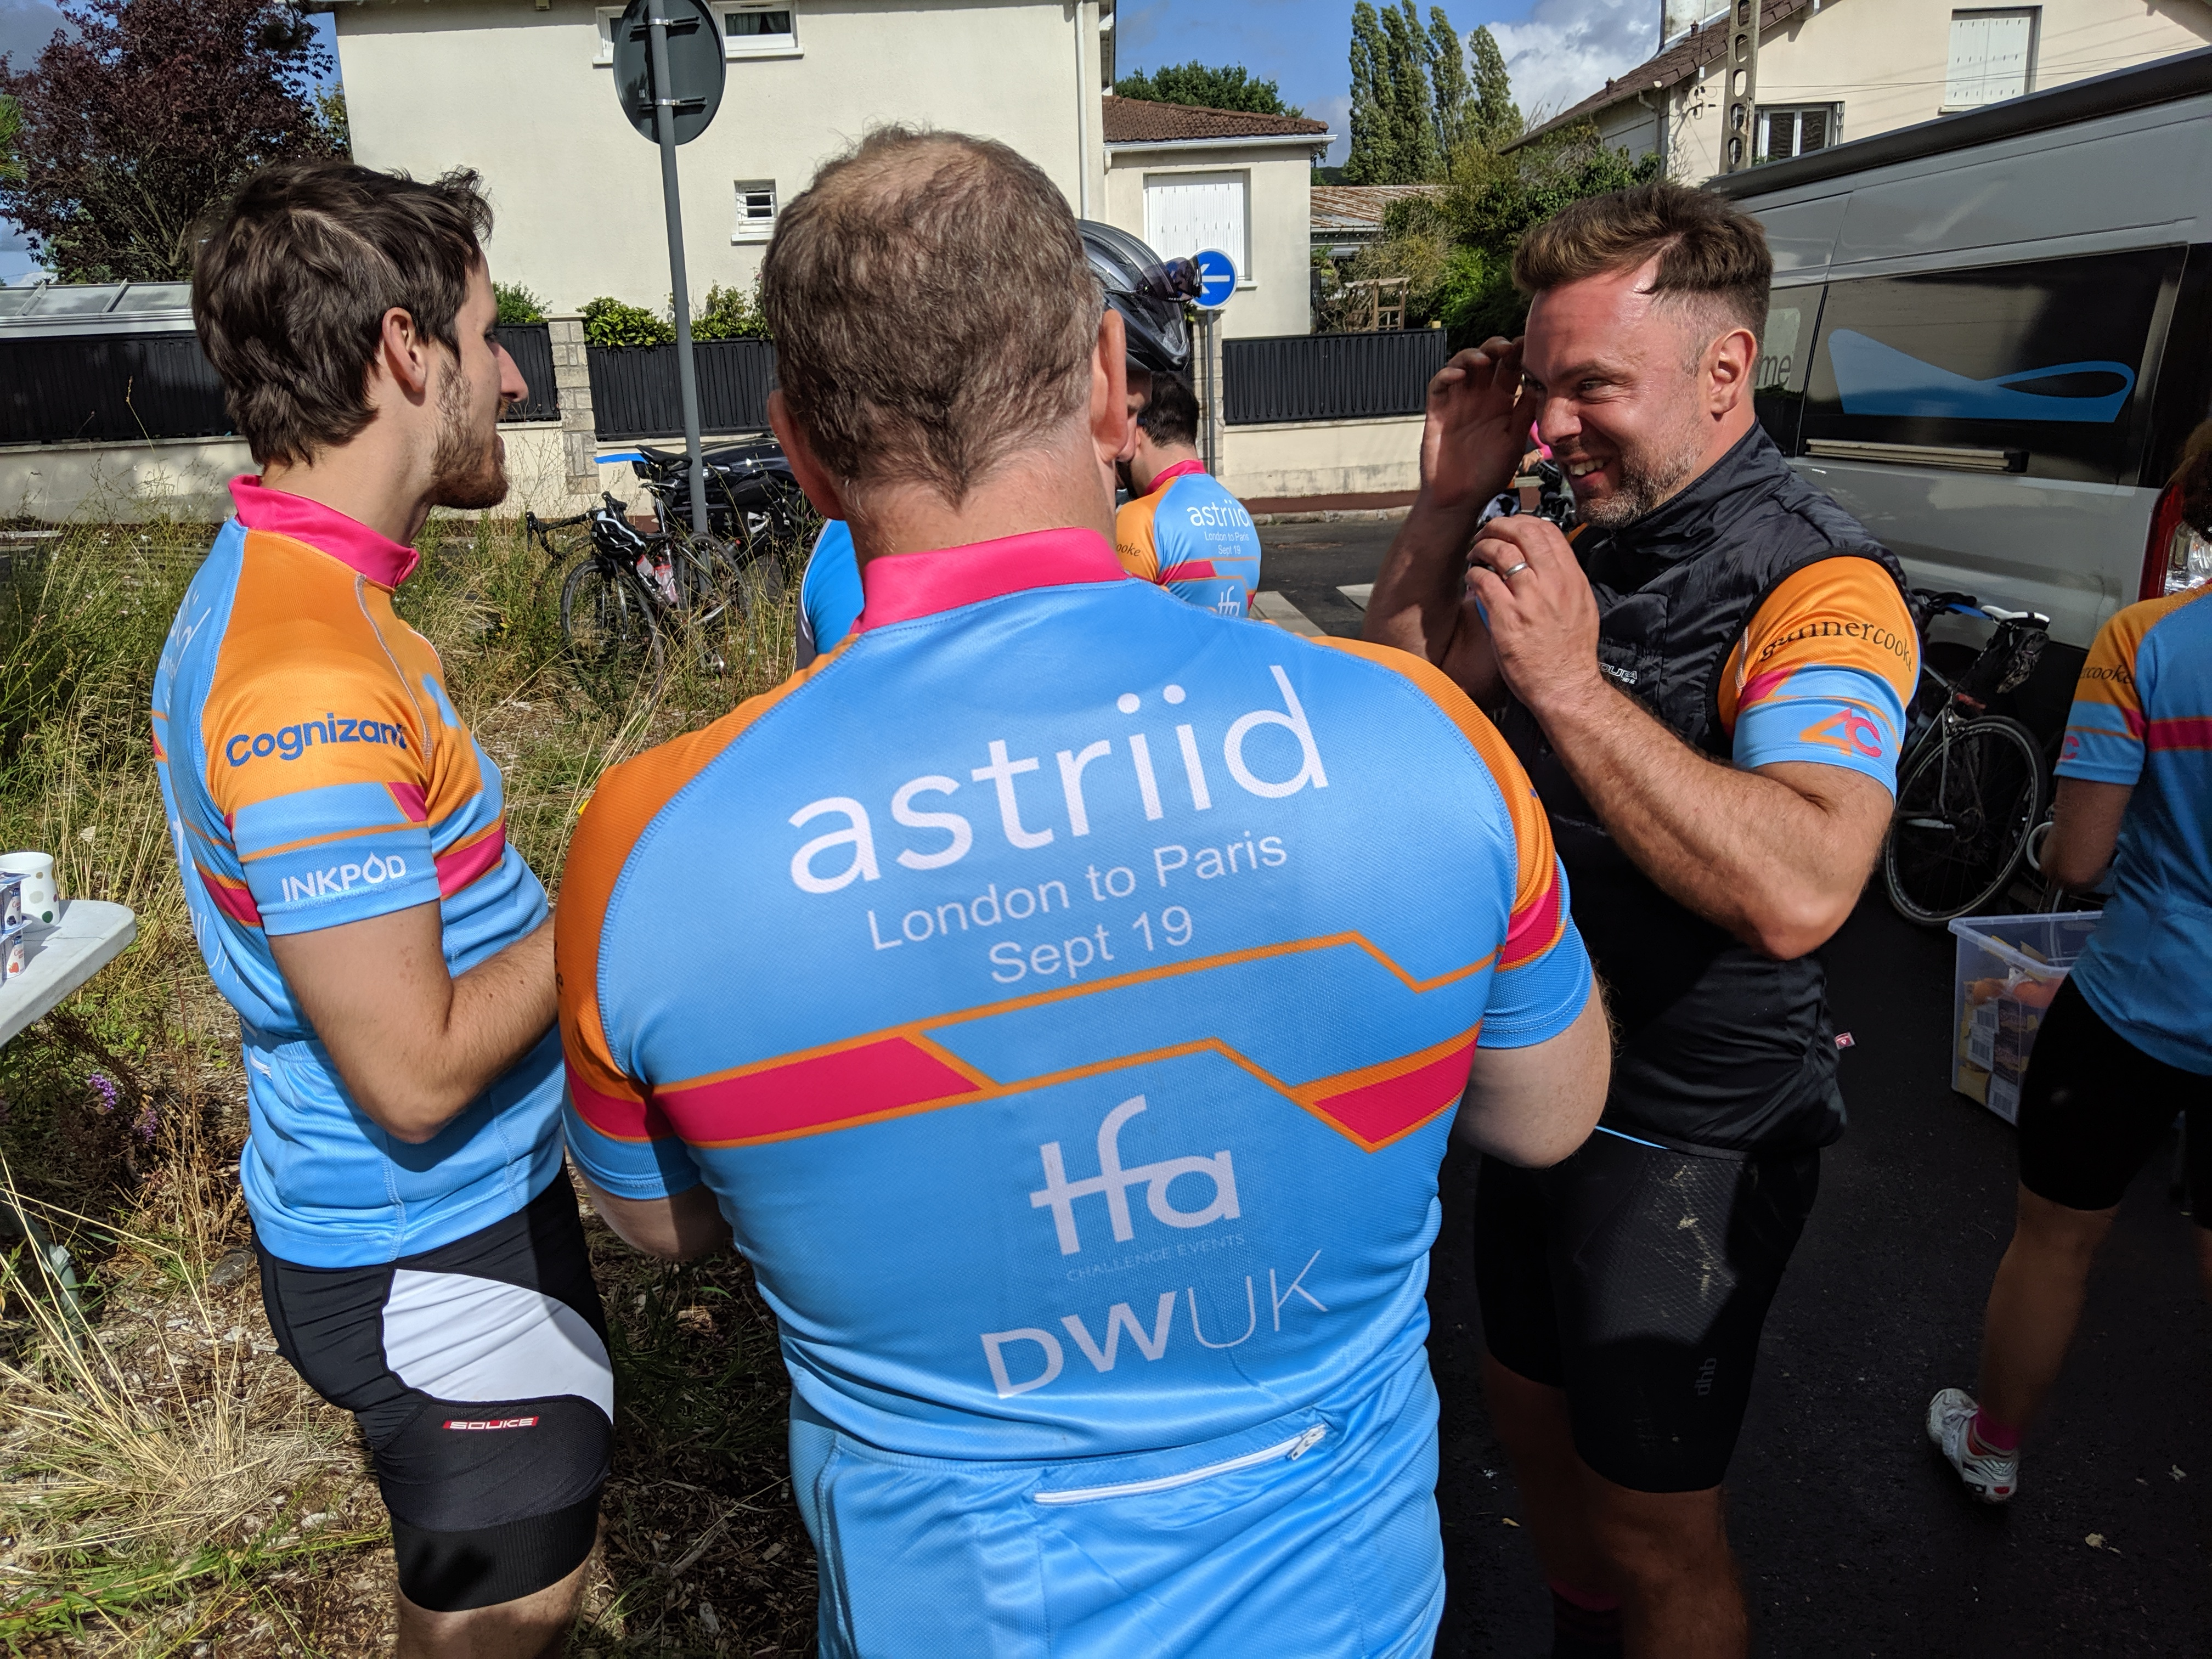 London to Paris 2 (L2P2) by Astriid fundraising photo 2